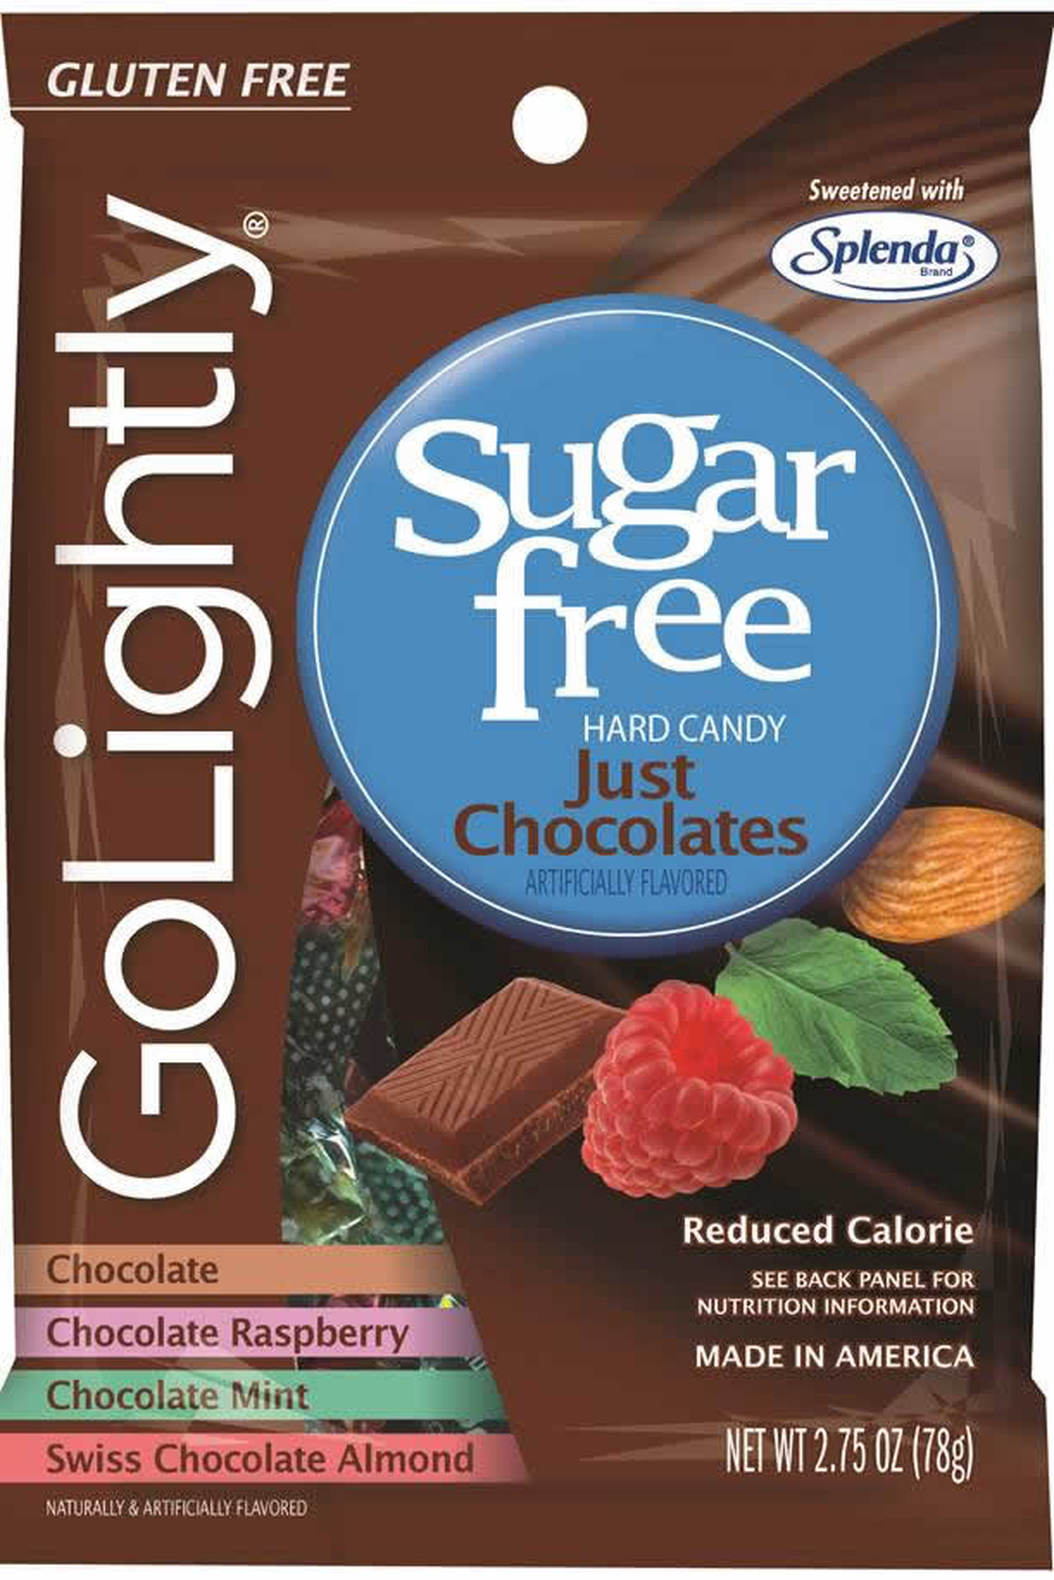 Go lightly sugar free just chocolates